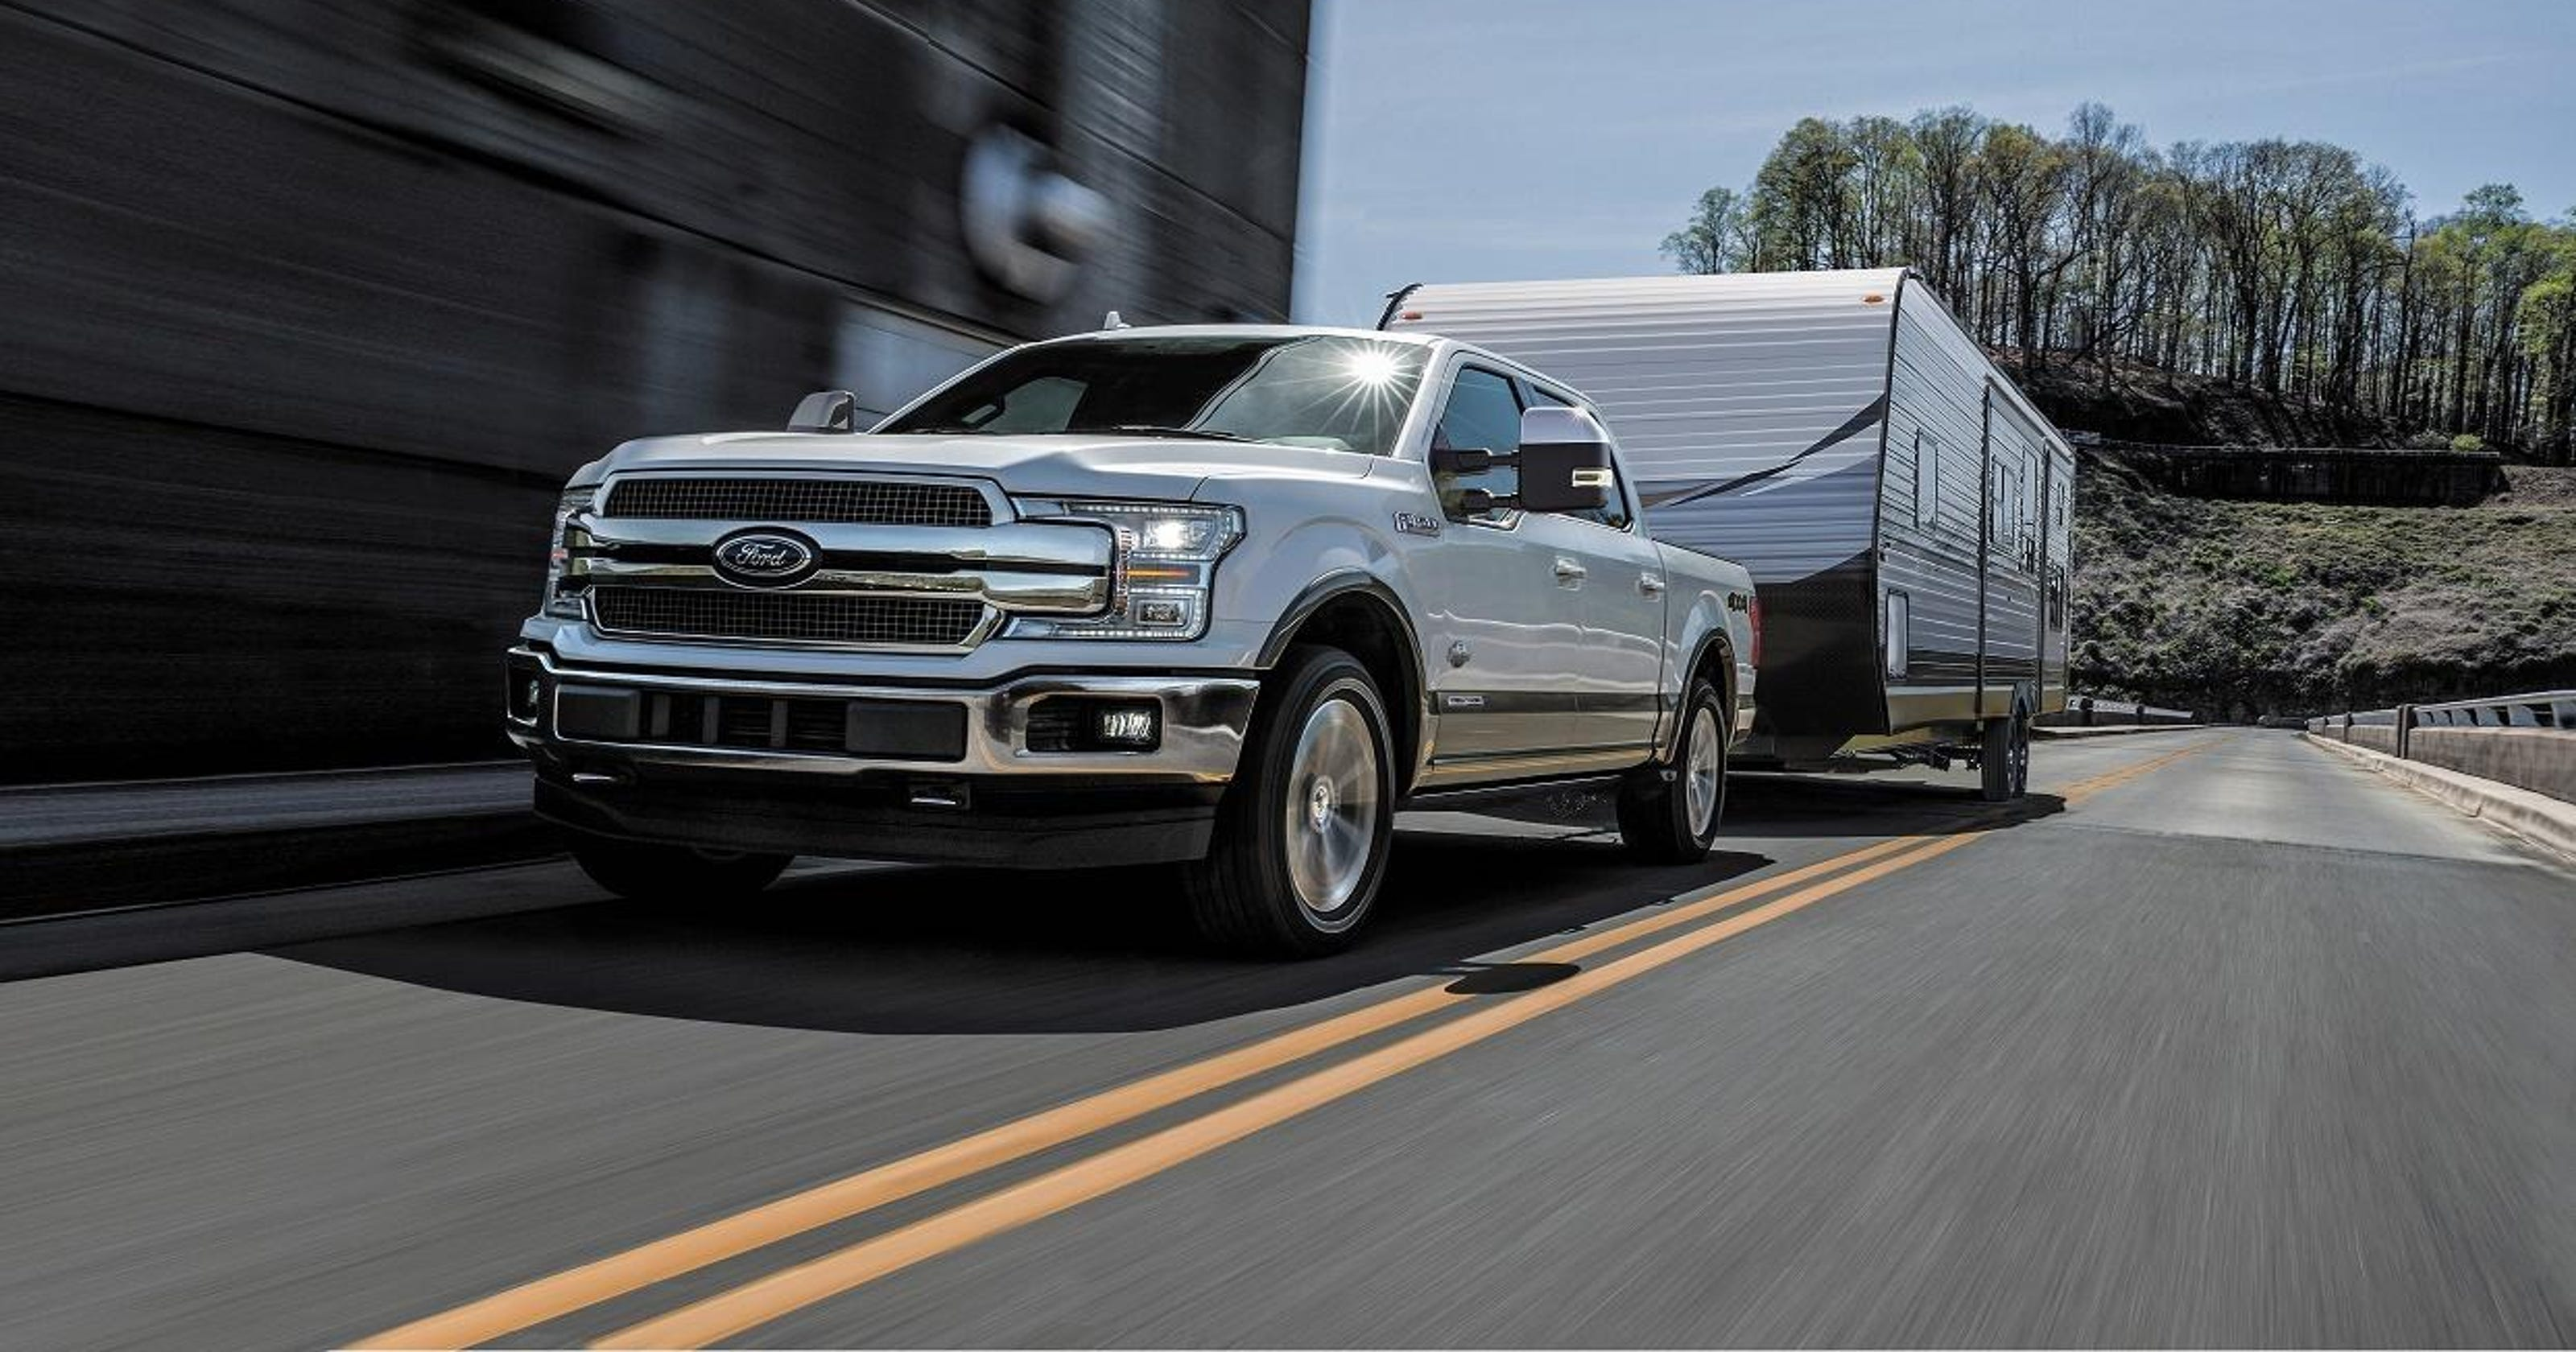 Diesel fuel economy gives ford f 150 new edge